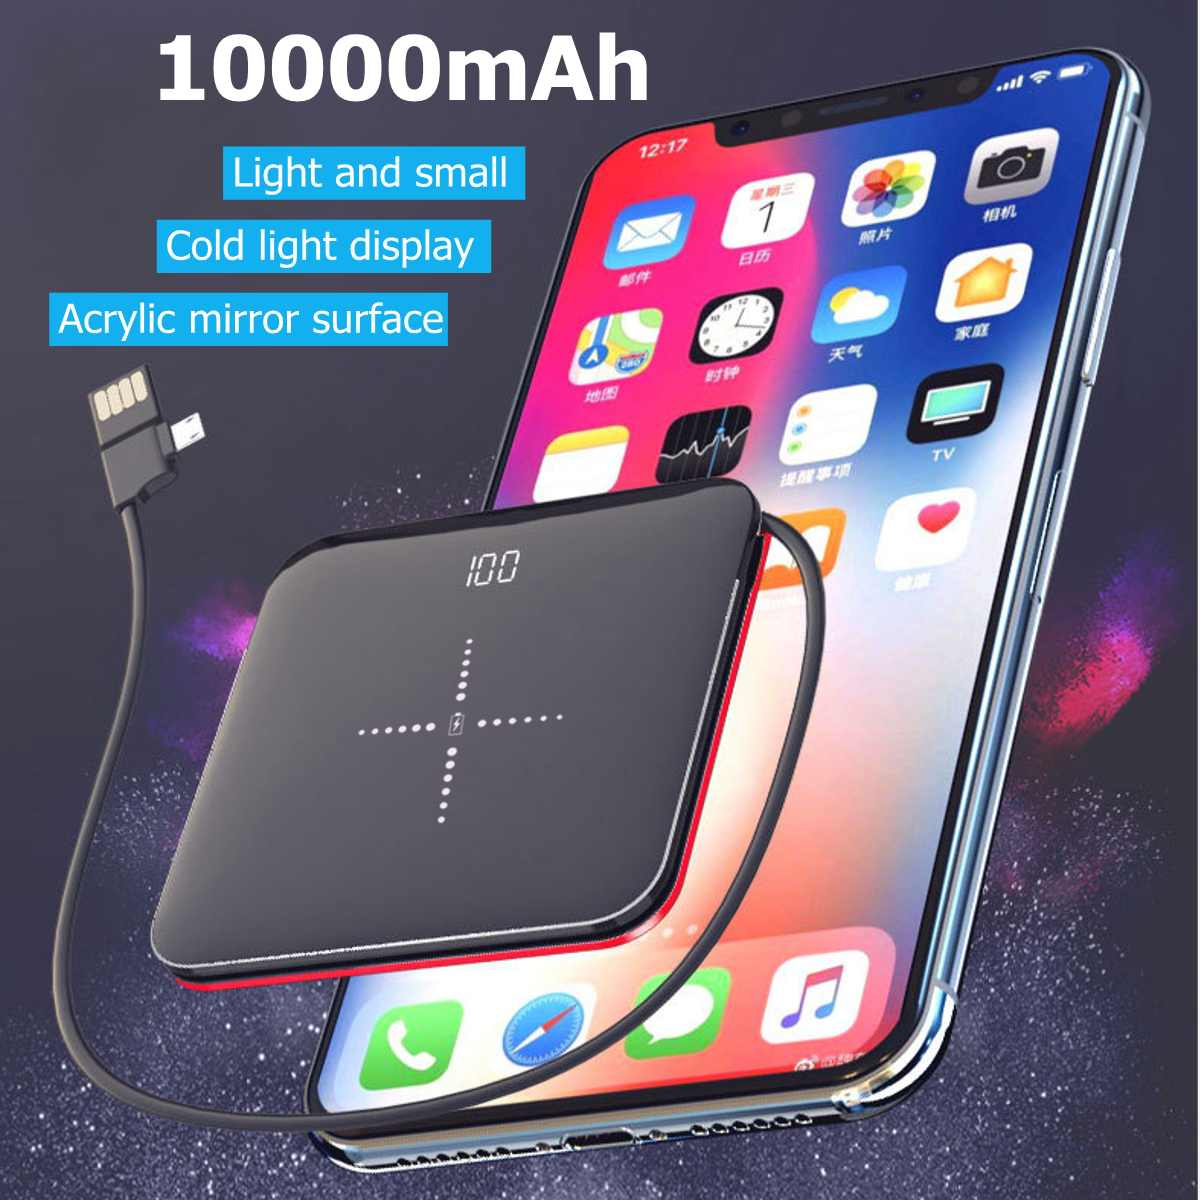 D72W Mini 1000mAh Qi Wireless Charger Quick Charing 3.0 For Iphone X,8,8 Plus for Xiaomi,Huaiwei 4 in 1 Interface extra CableD72W Mini 1000mAh Qi Wireless Charger Quick Charing 3.0 For Iphone X,8,8 Plus for Xiaomi,Huaiwei 4 in 1 Interface extra Cable